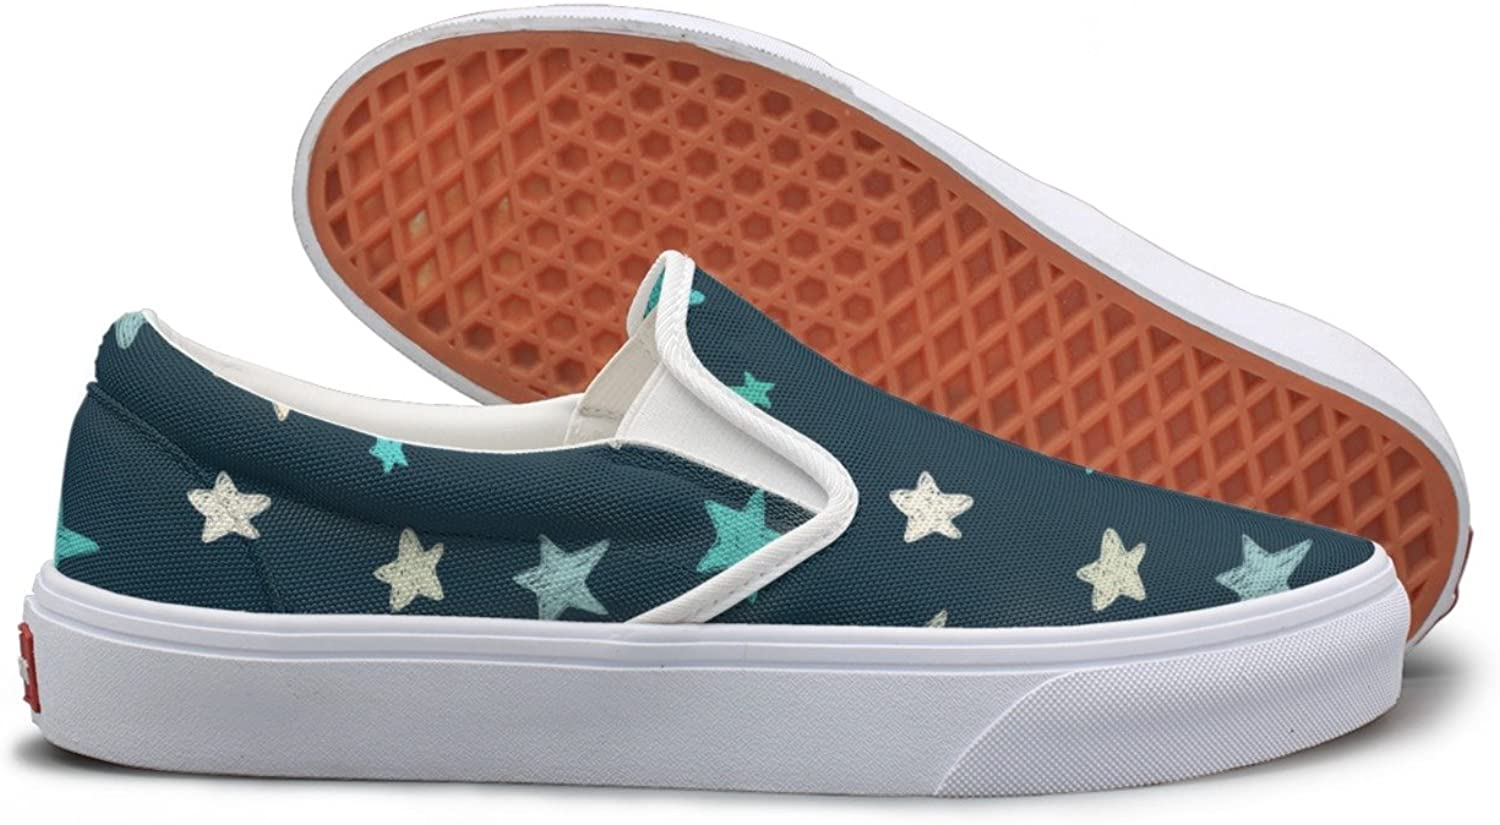 SEERTED What is Doodle Star Slip On Canvas shoes for Women